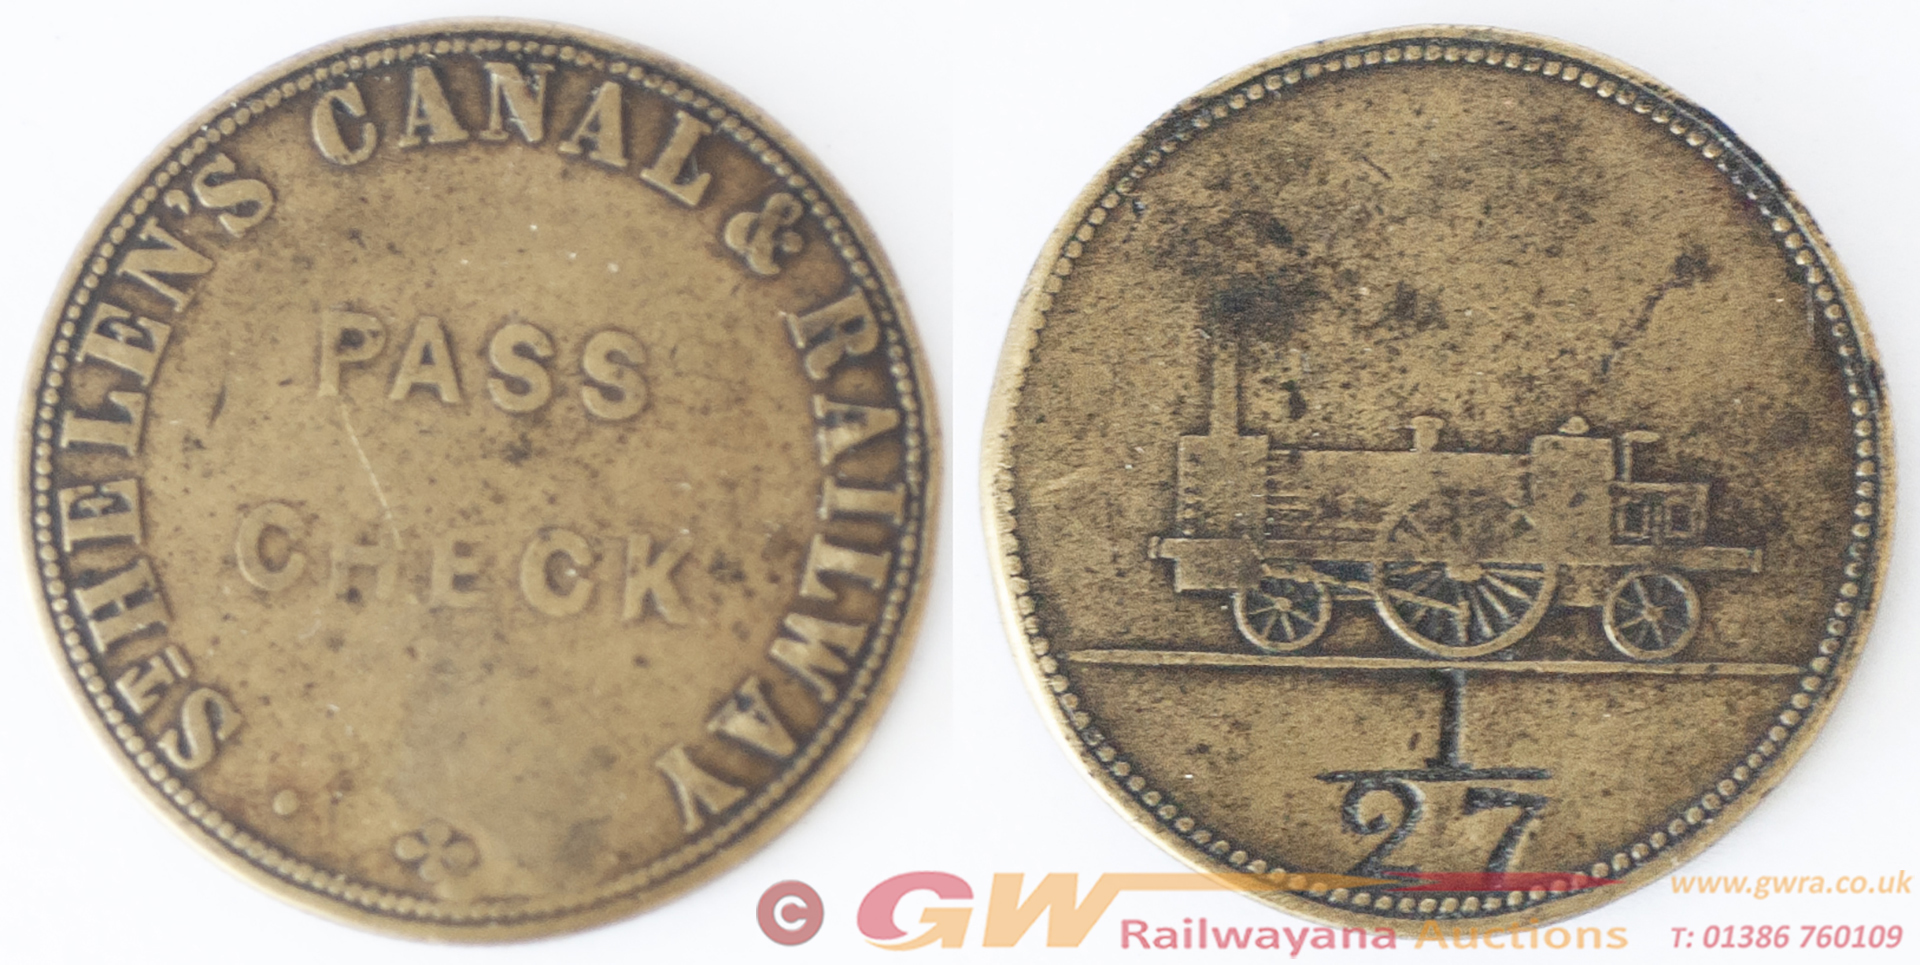 ST HELEN'S CANAL & RAILWAY PASS CHECK 27 From The